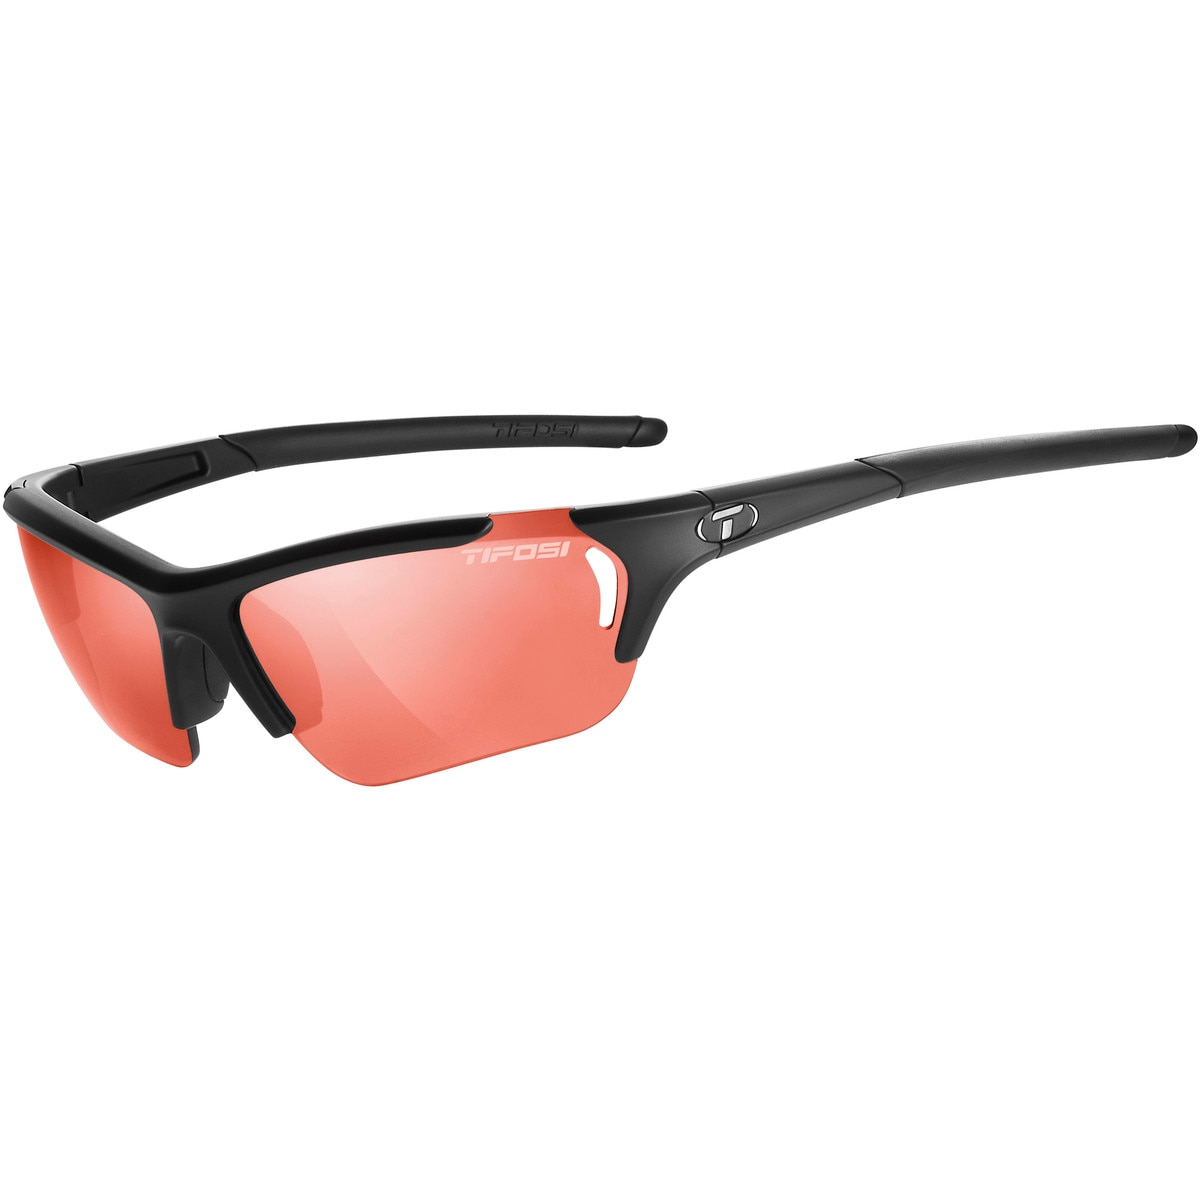 Tifosi Optics Radius FC Photochromic Sunglasses Men's